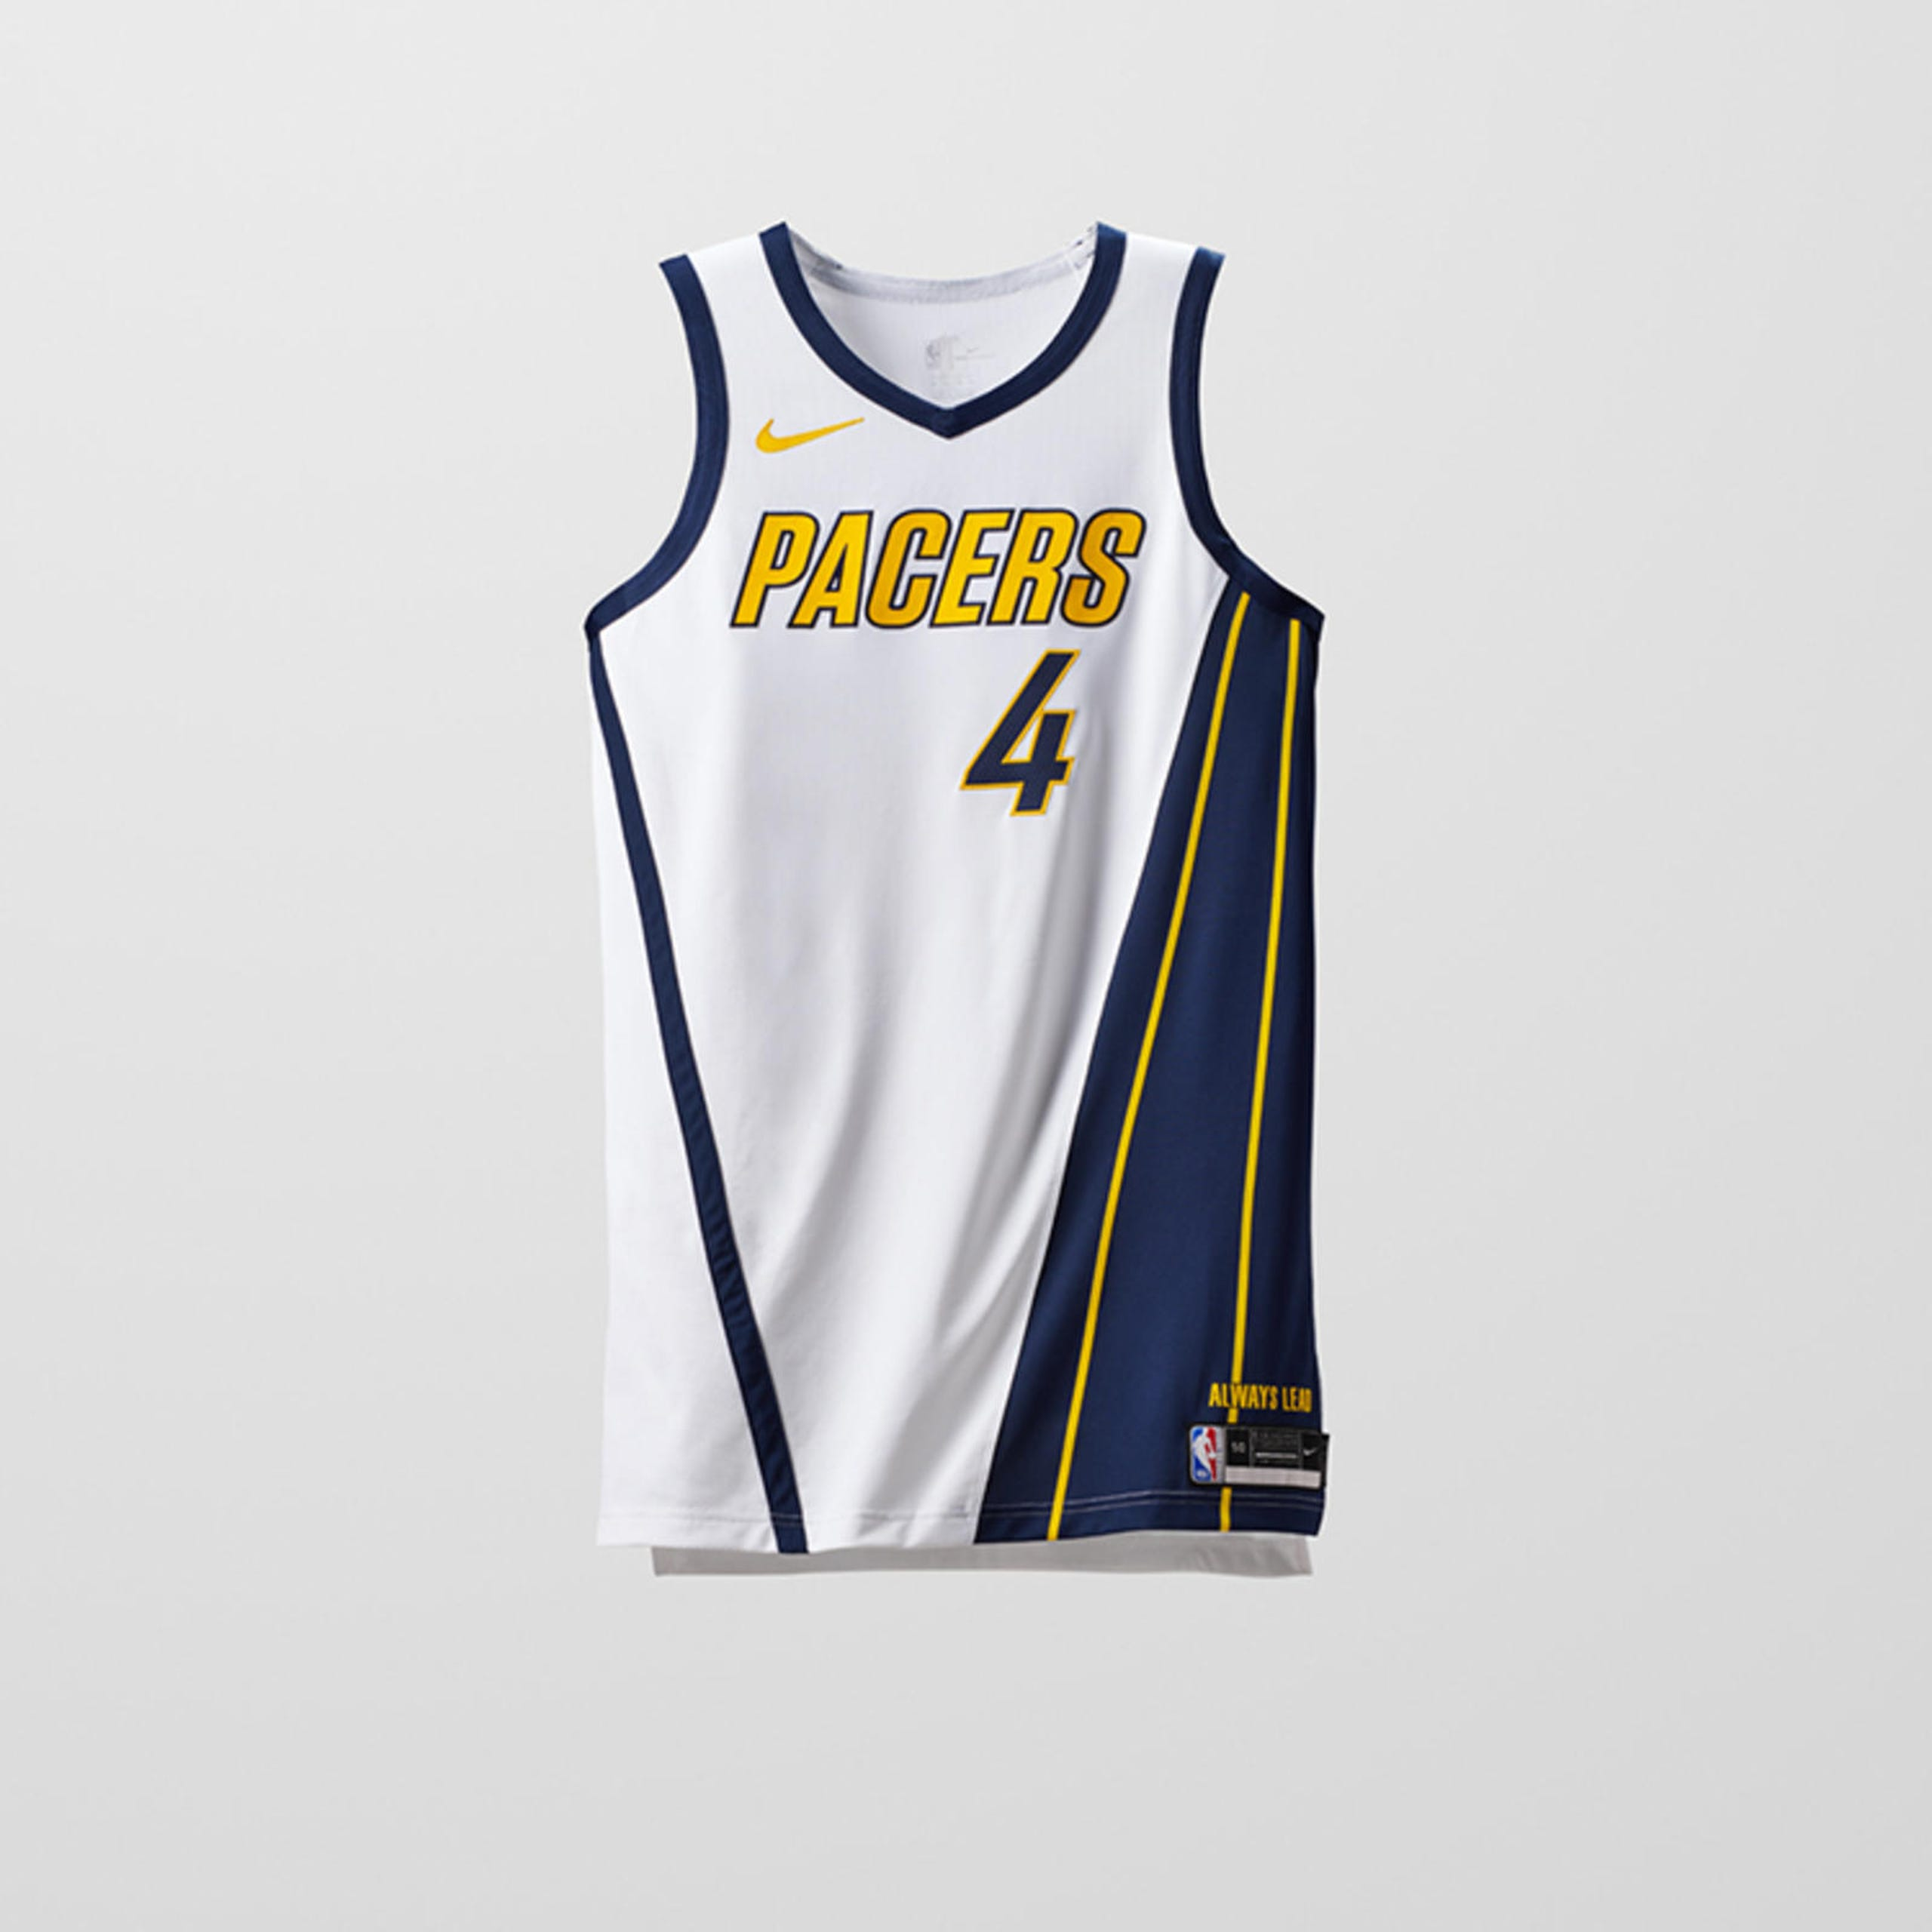 hot sale online 62234 8187c Pacers uniforms through the years